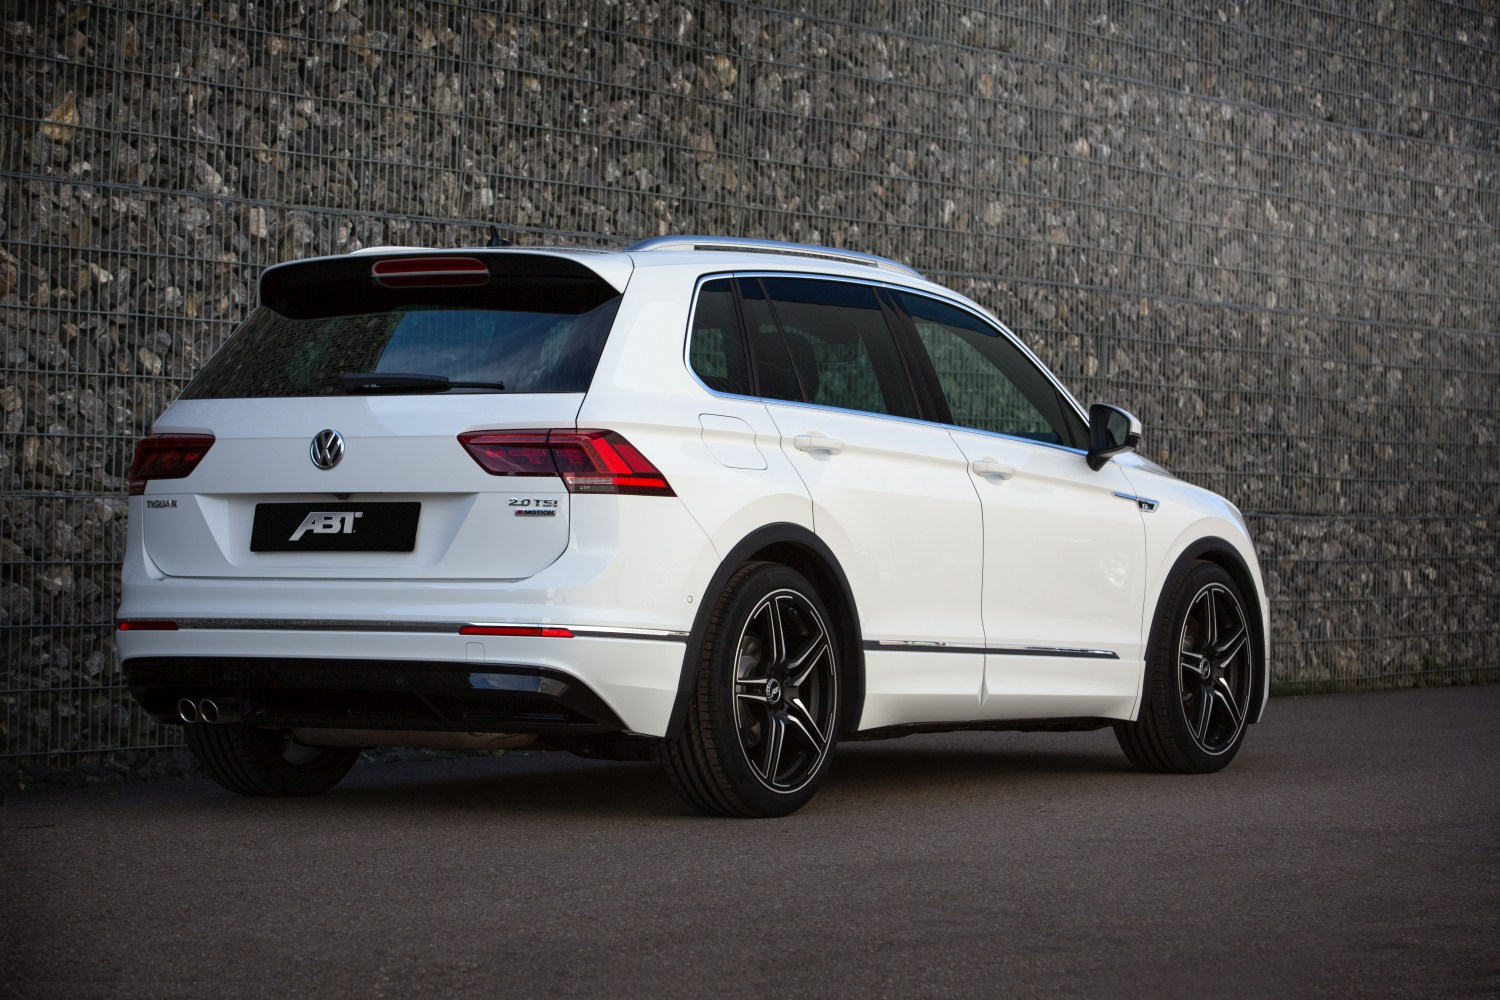 More Abt Power For The New Vw Tiguan